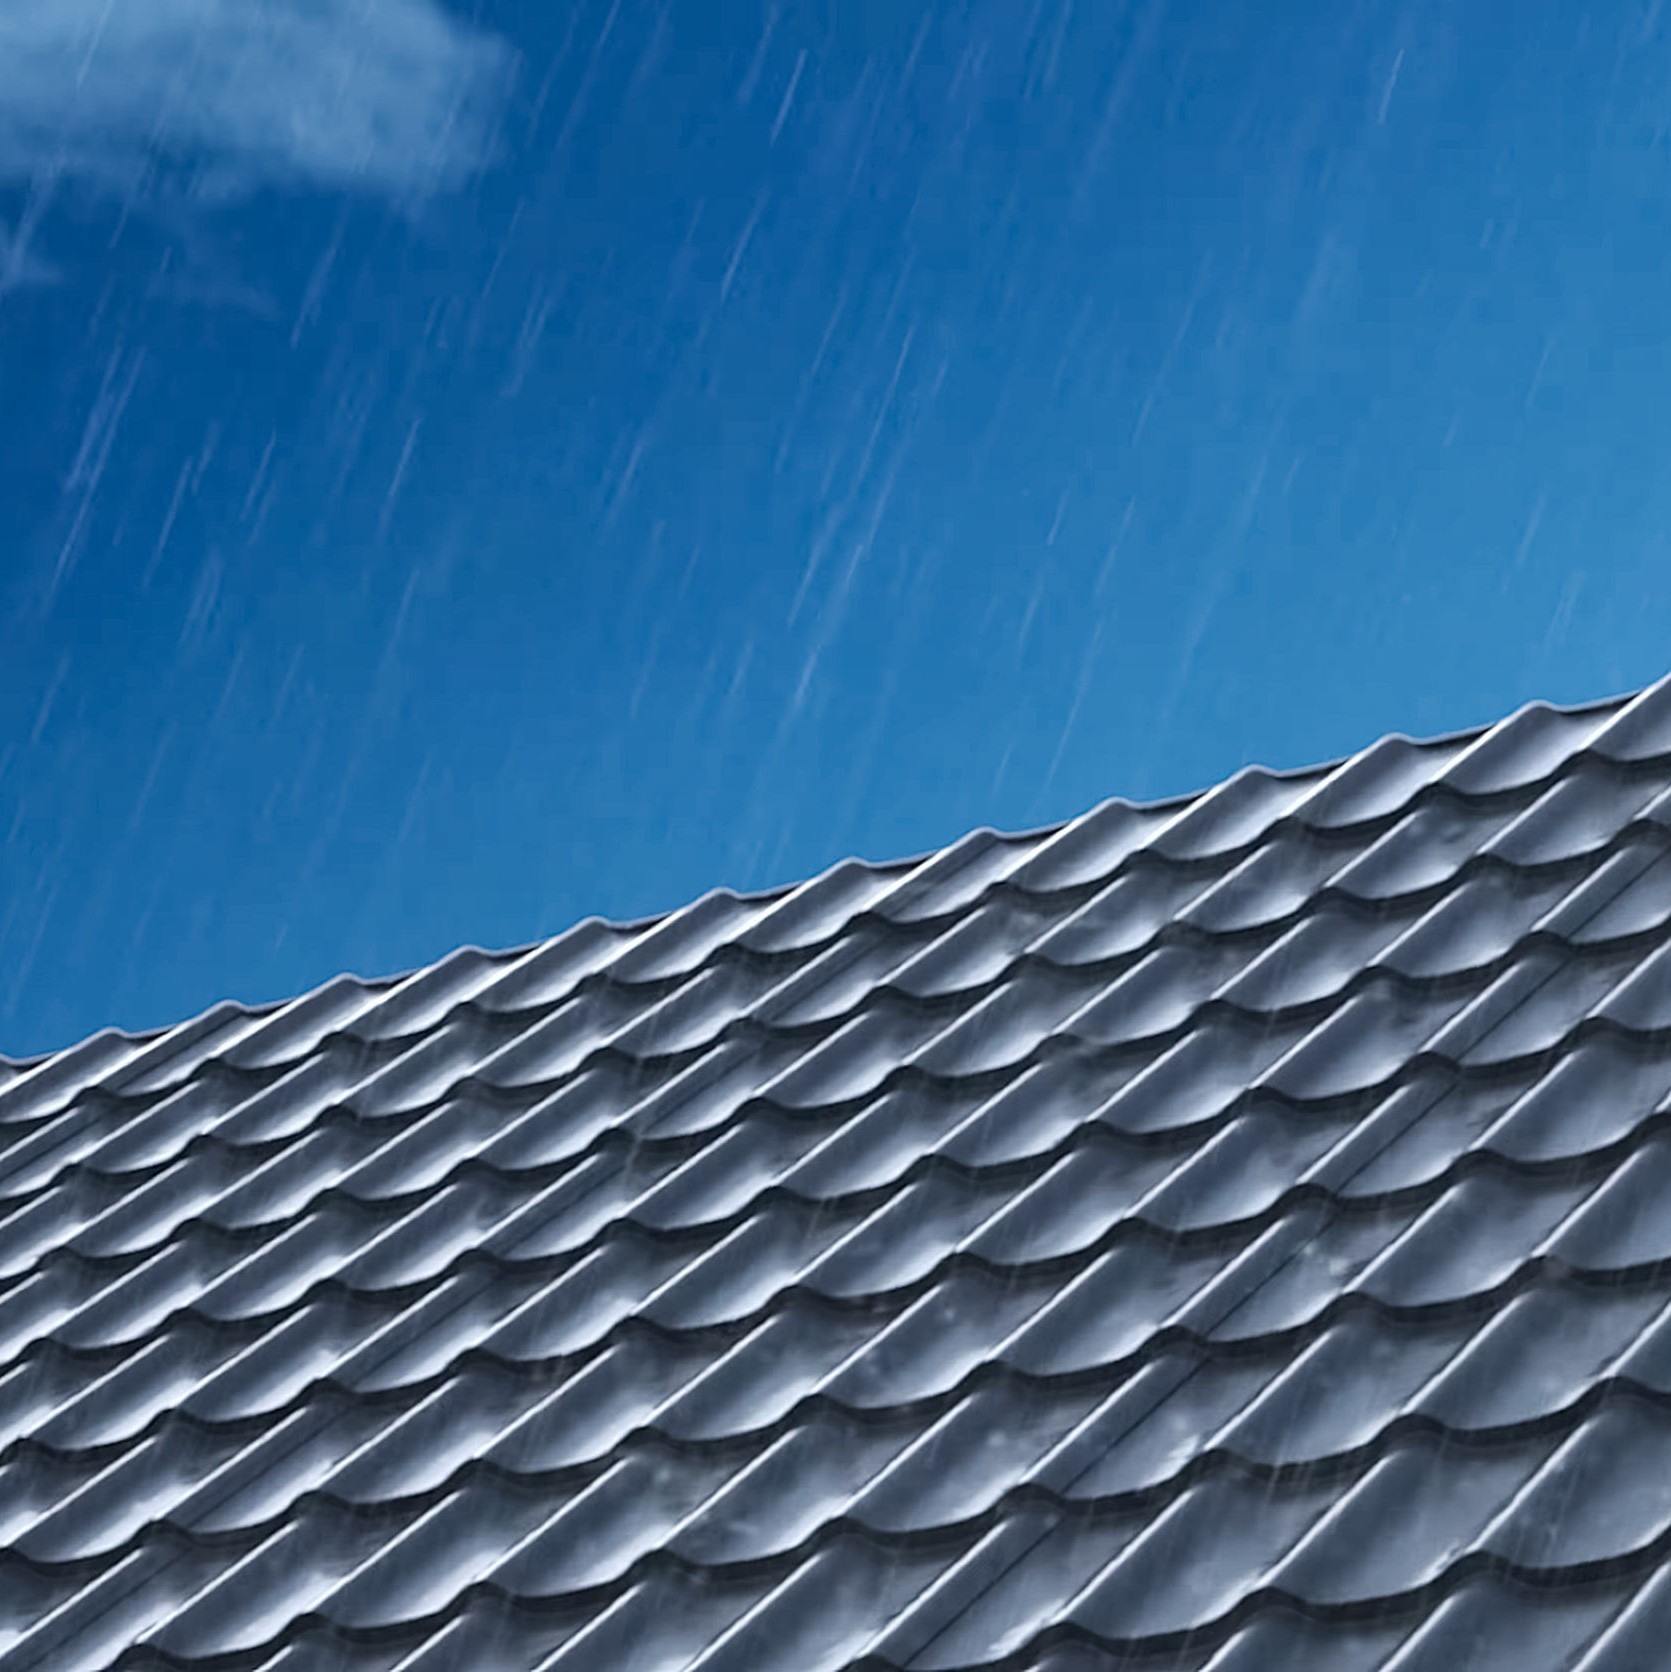 A metal roof on a rainy day.